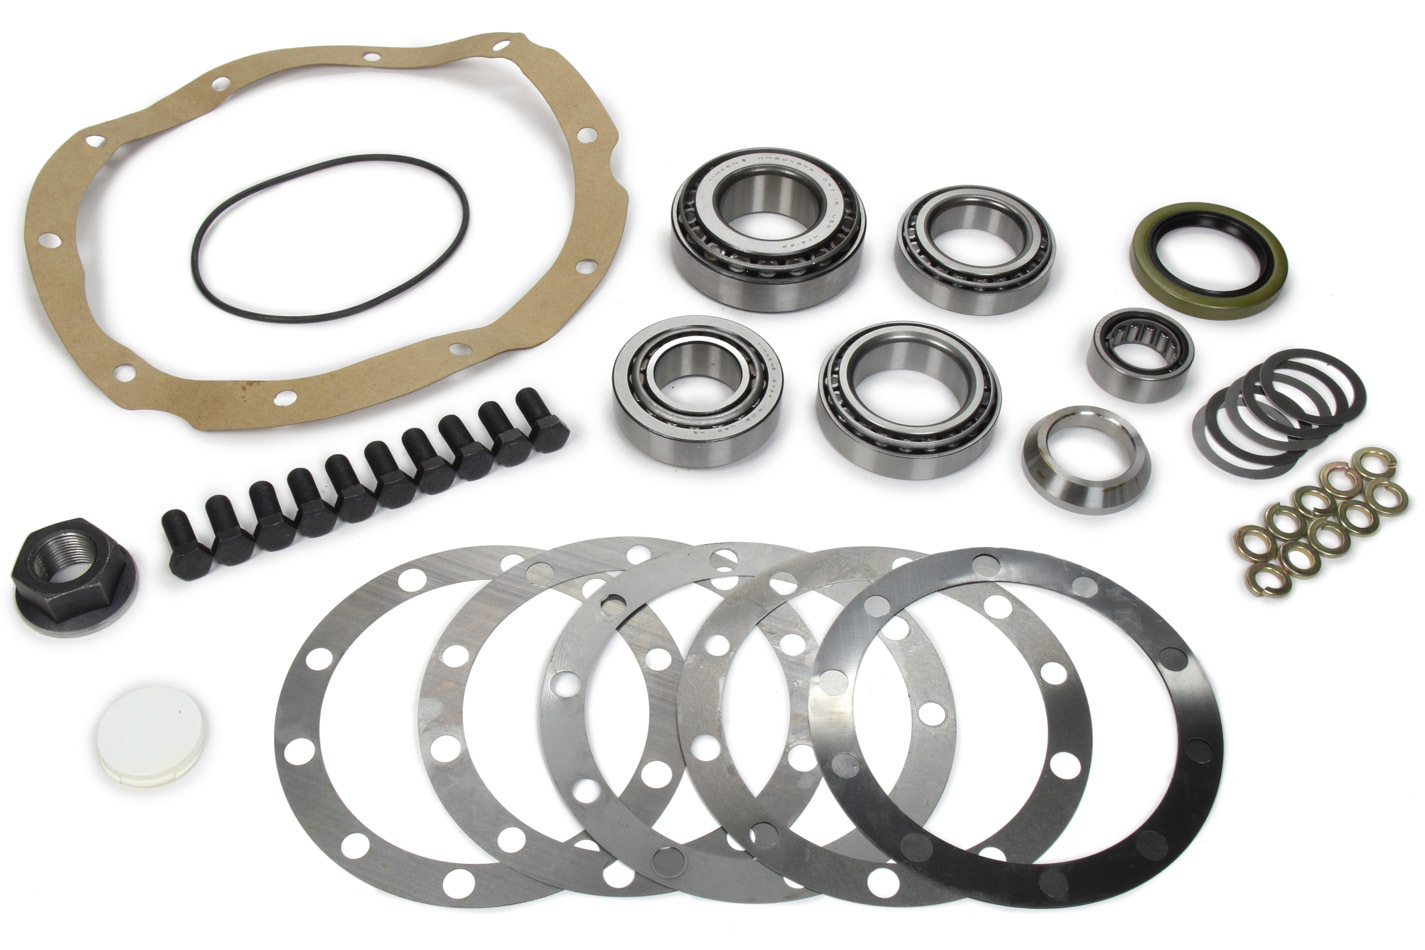 Ford 9in Rear Diff Setup Kit 3.062 Case 10-Hole